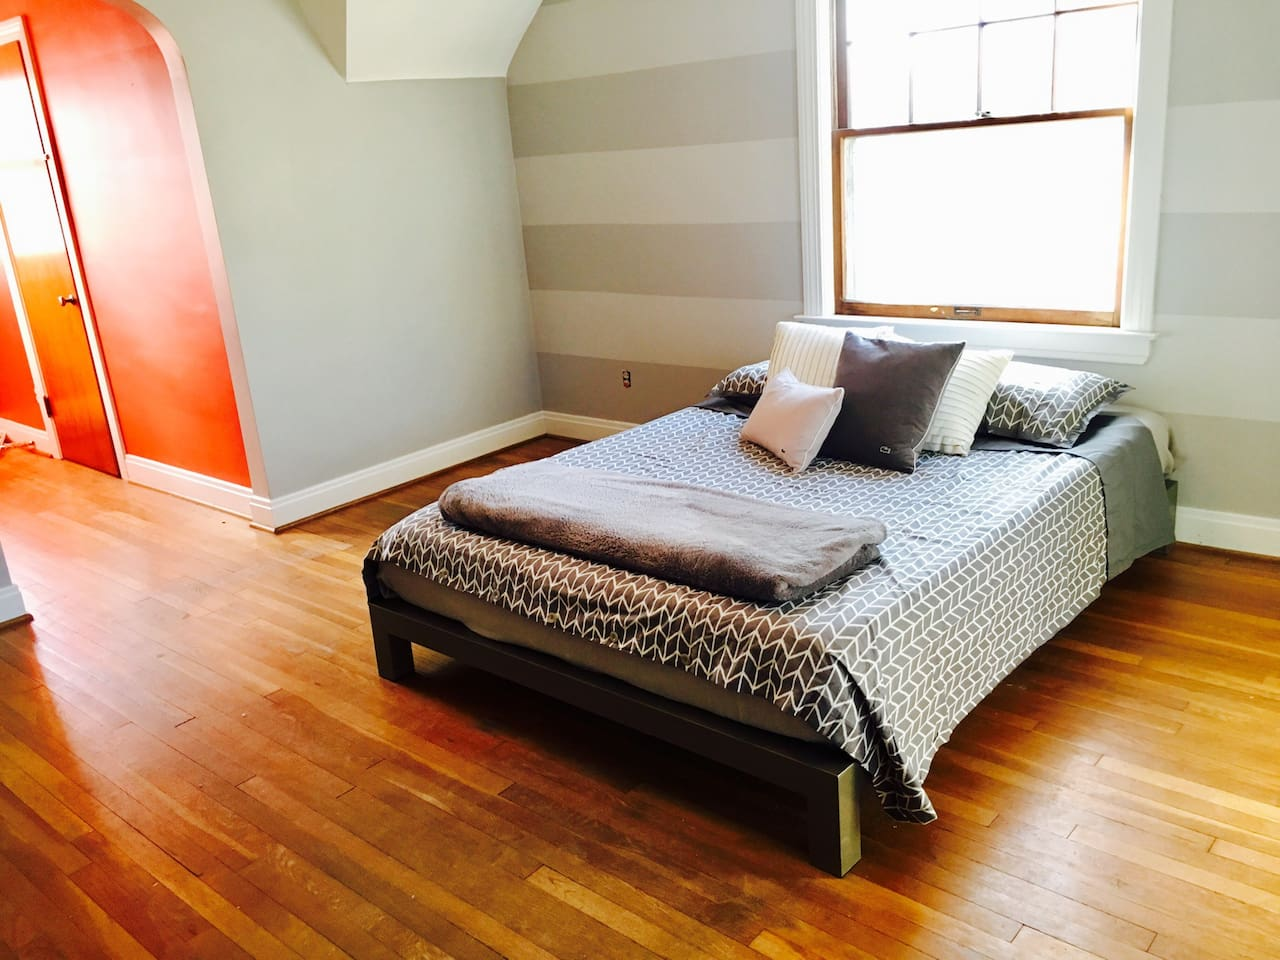 The Chicago Room (1 queen bed)